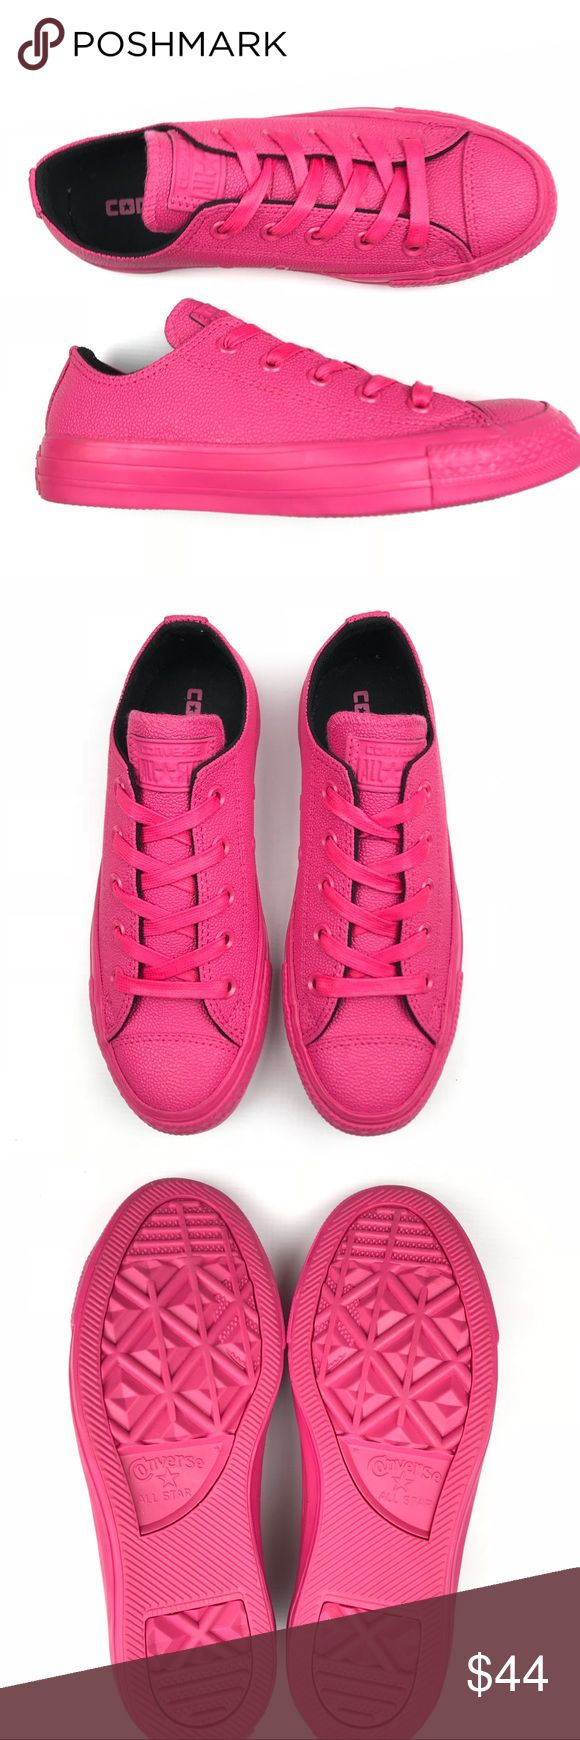 Converse All Star Ox Vivid Pink Pinktober sneakers New without box Converse All Star Ox Vivid Pink Pinktober sneakers Converse Shoes Sneakers